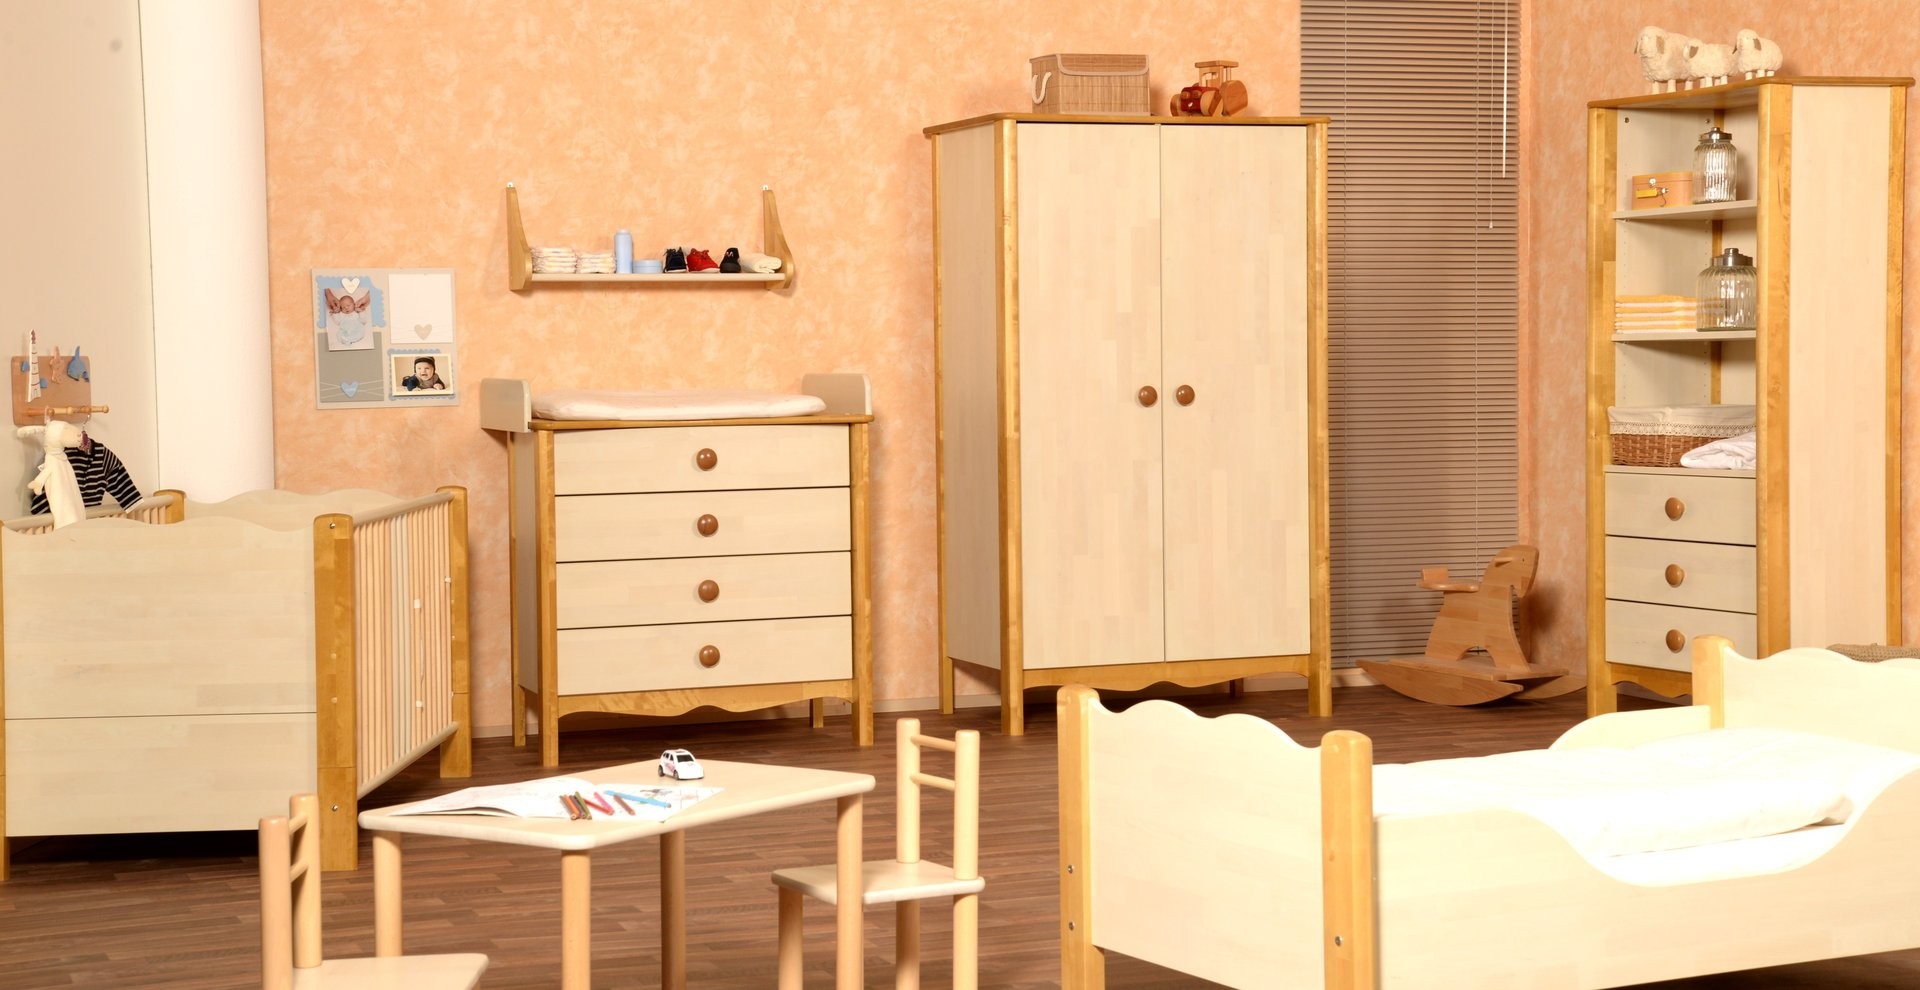 kinderzimmer nostalgie von taube altweiss honig umbauseiten precogs. Black Bedroom Furniture Sets. Home Design Ideas